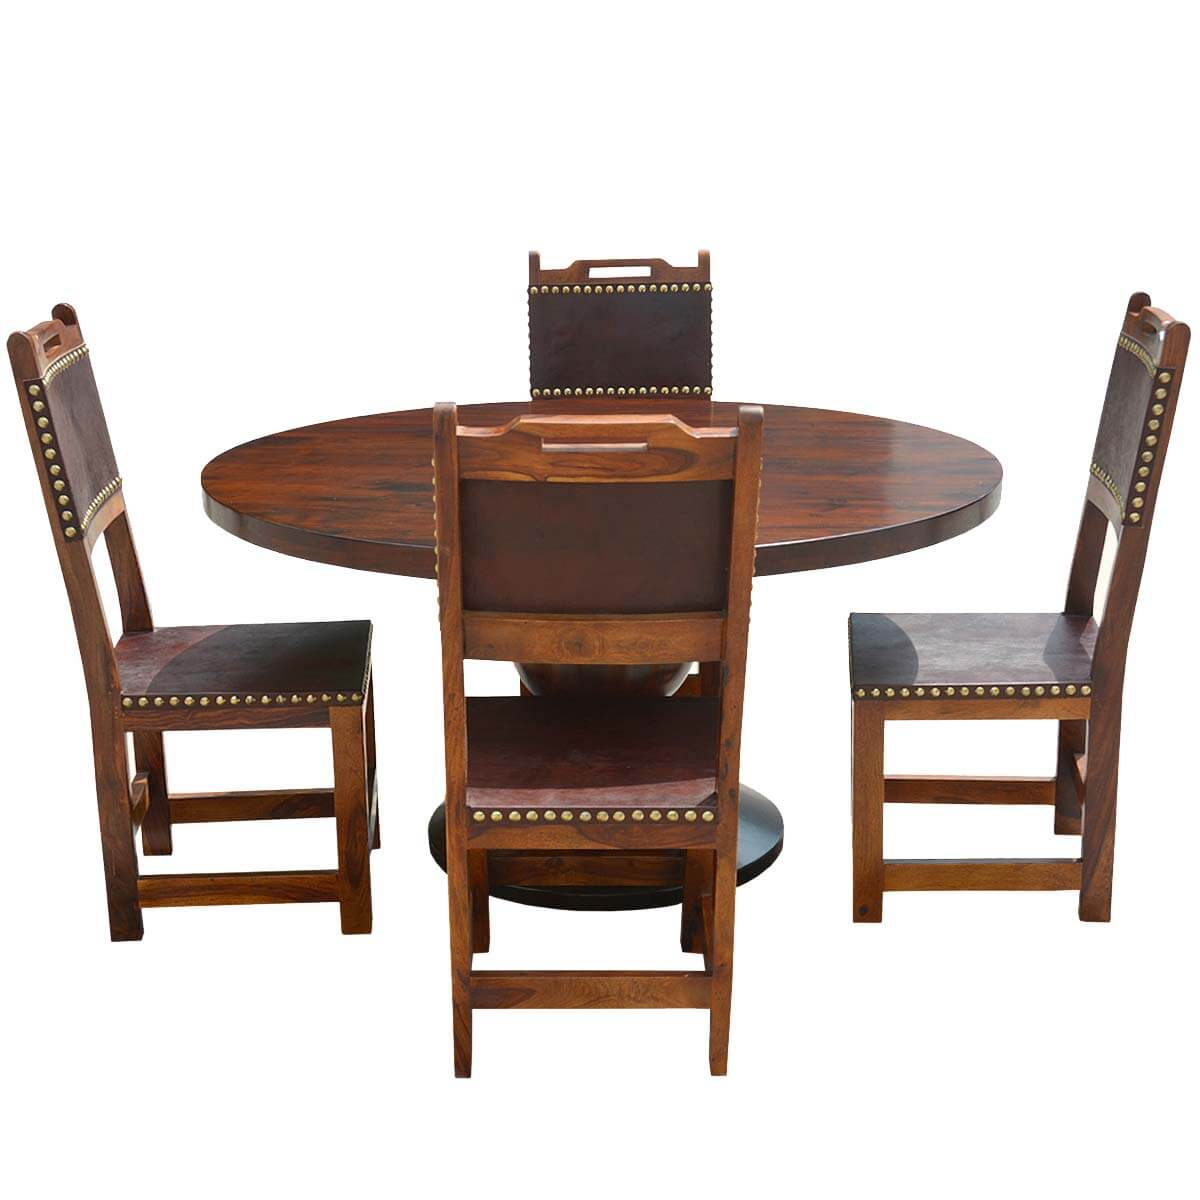 Santa ana round kitchen dining table set with leather back for Round kitchen table sets